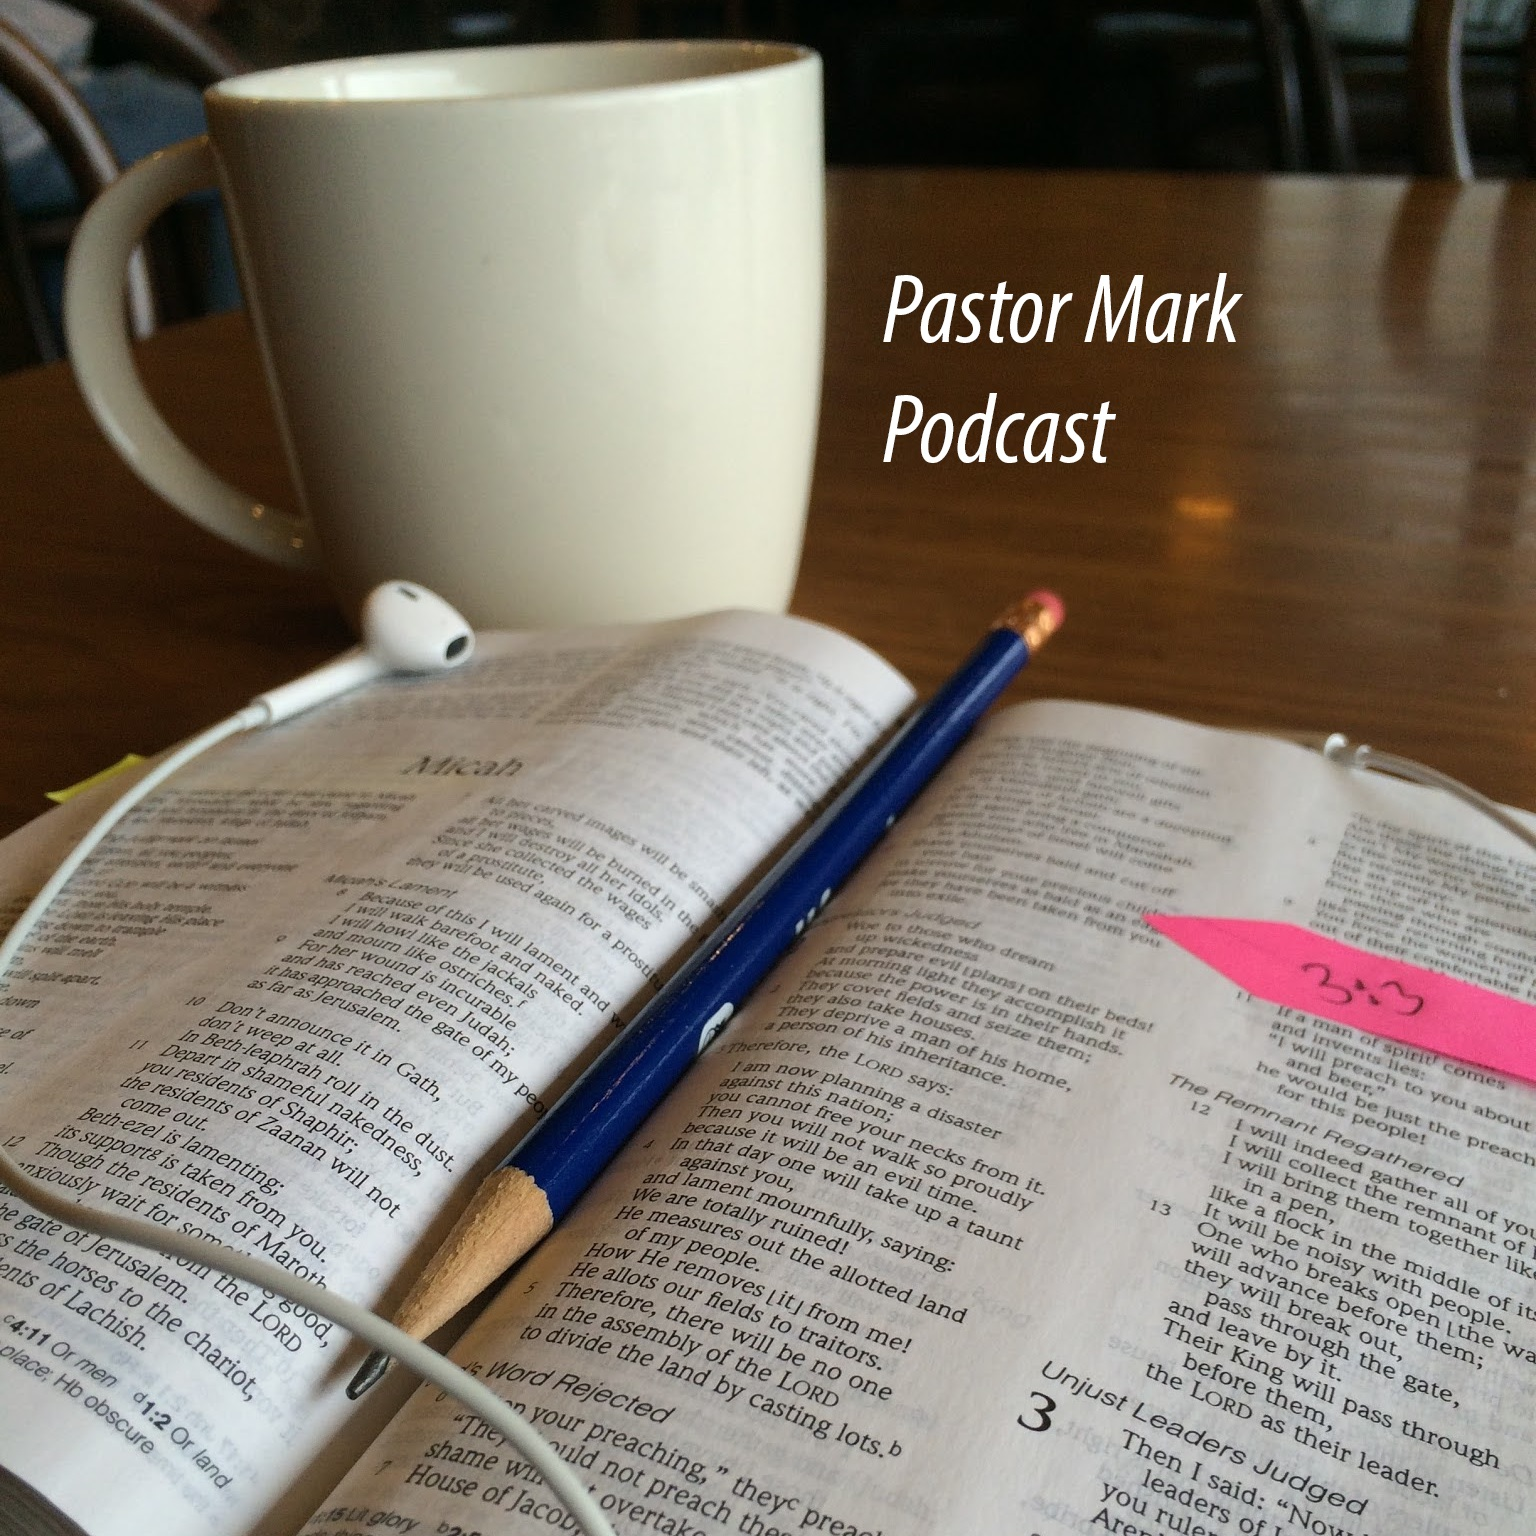 Pastor Mark Podcast